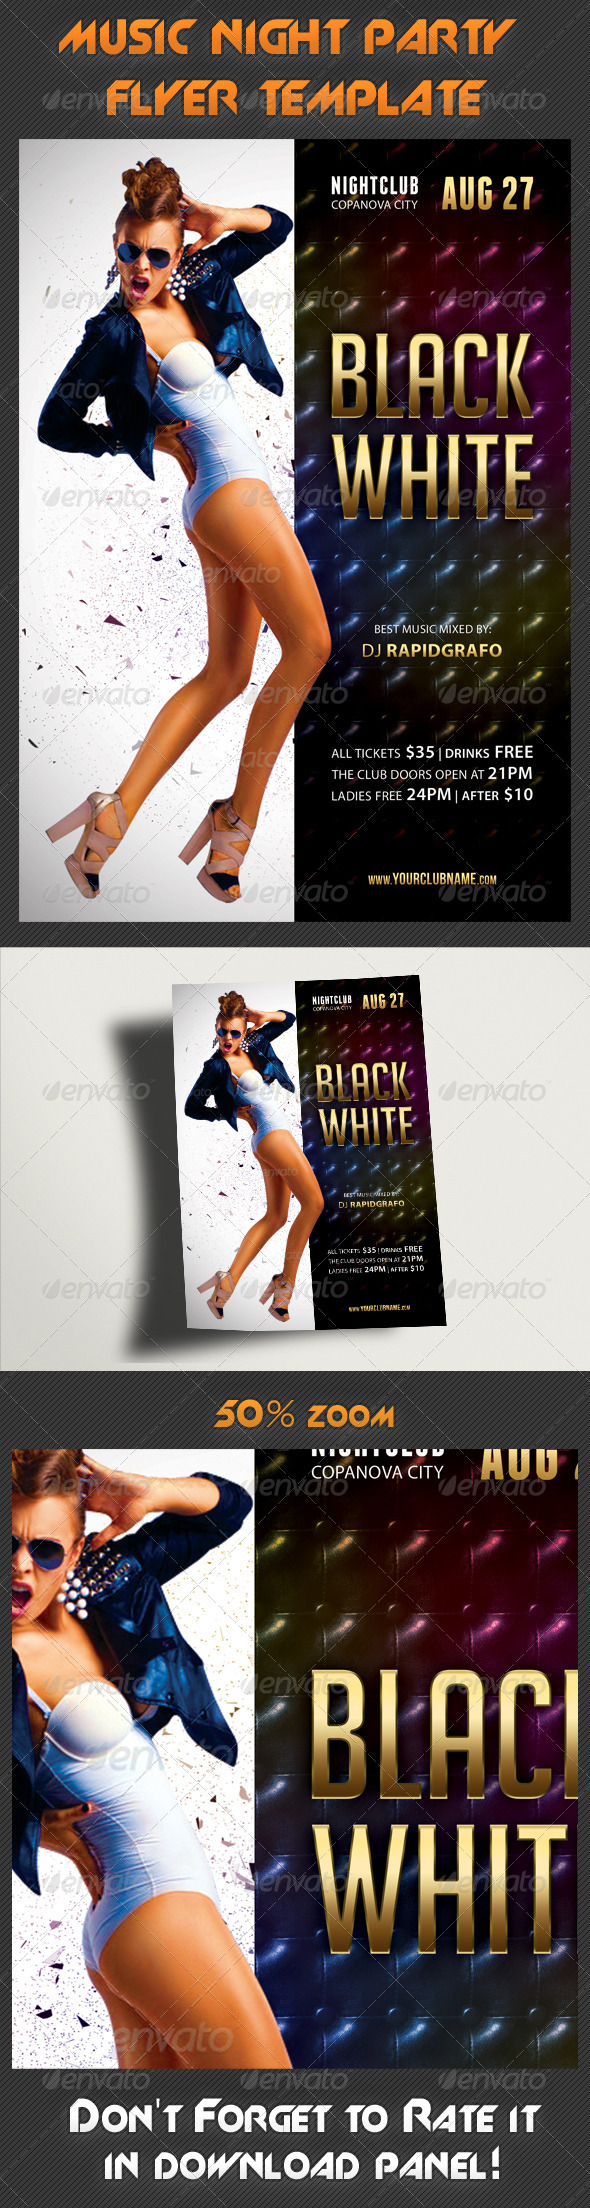 Black And White Flyer Template - Clubs & Parties Events